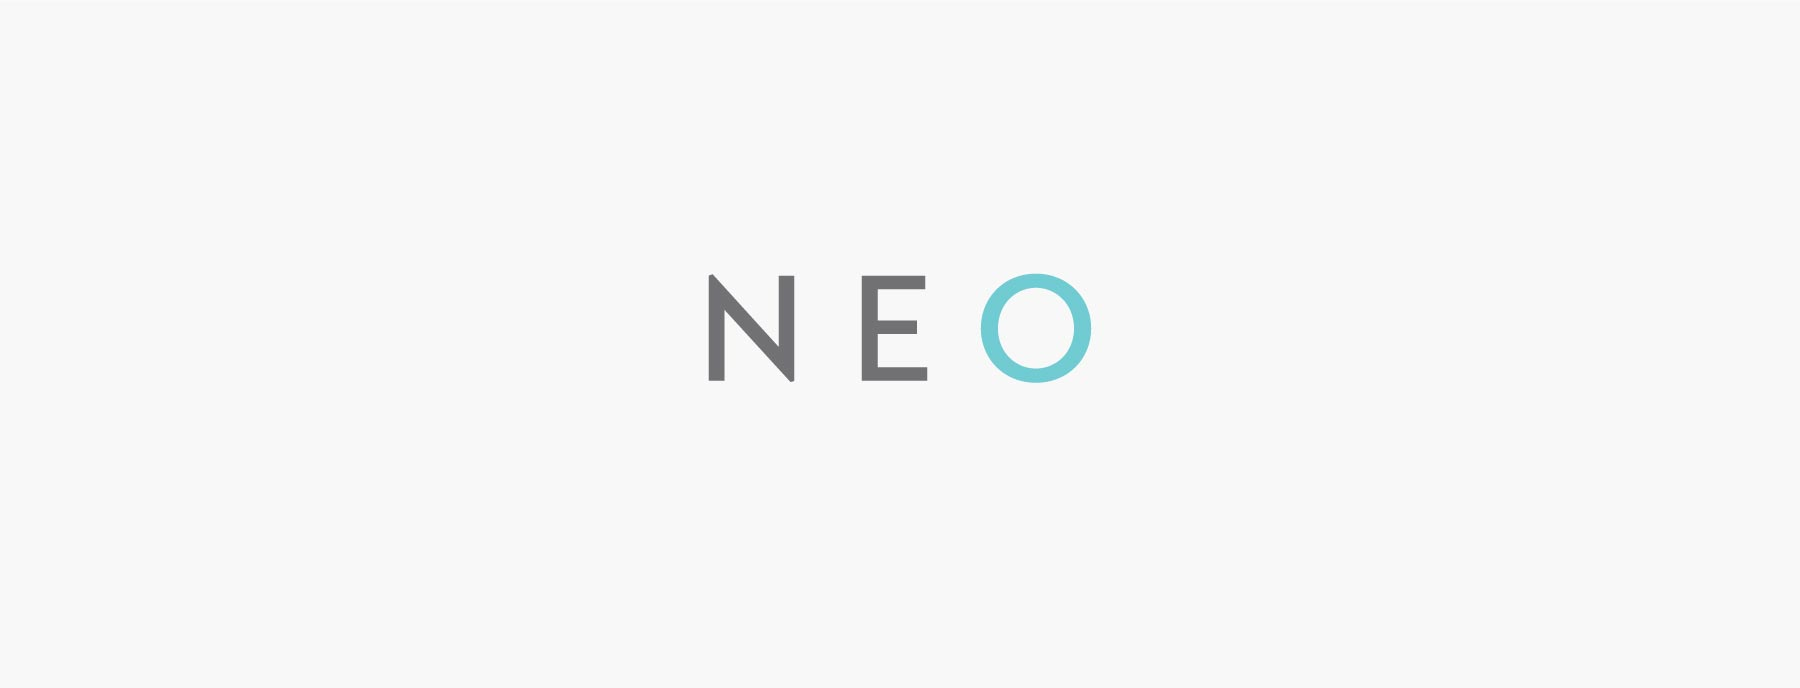 NEO primary logo design, created by Lisa Furze